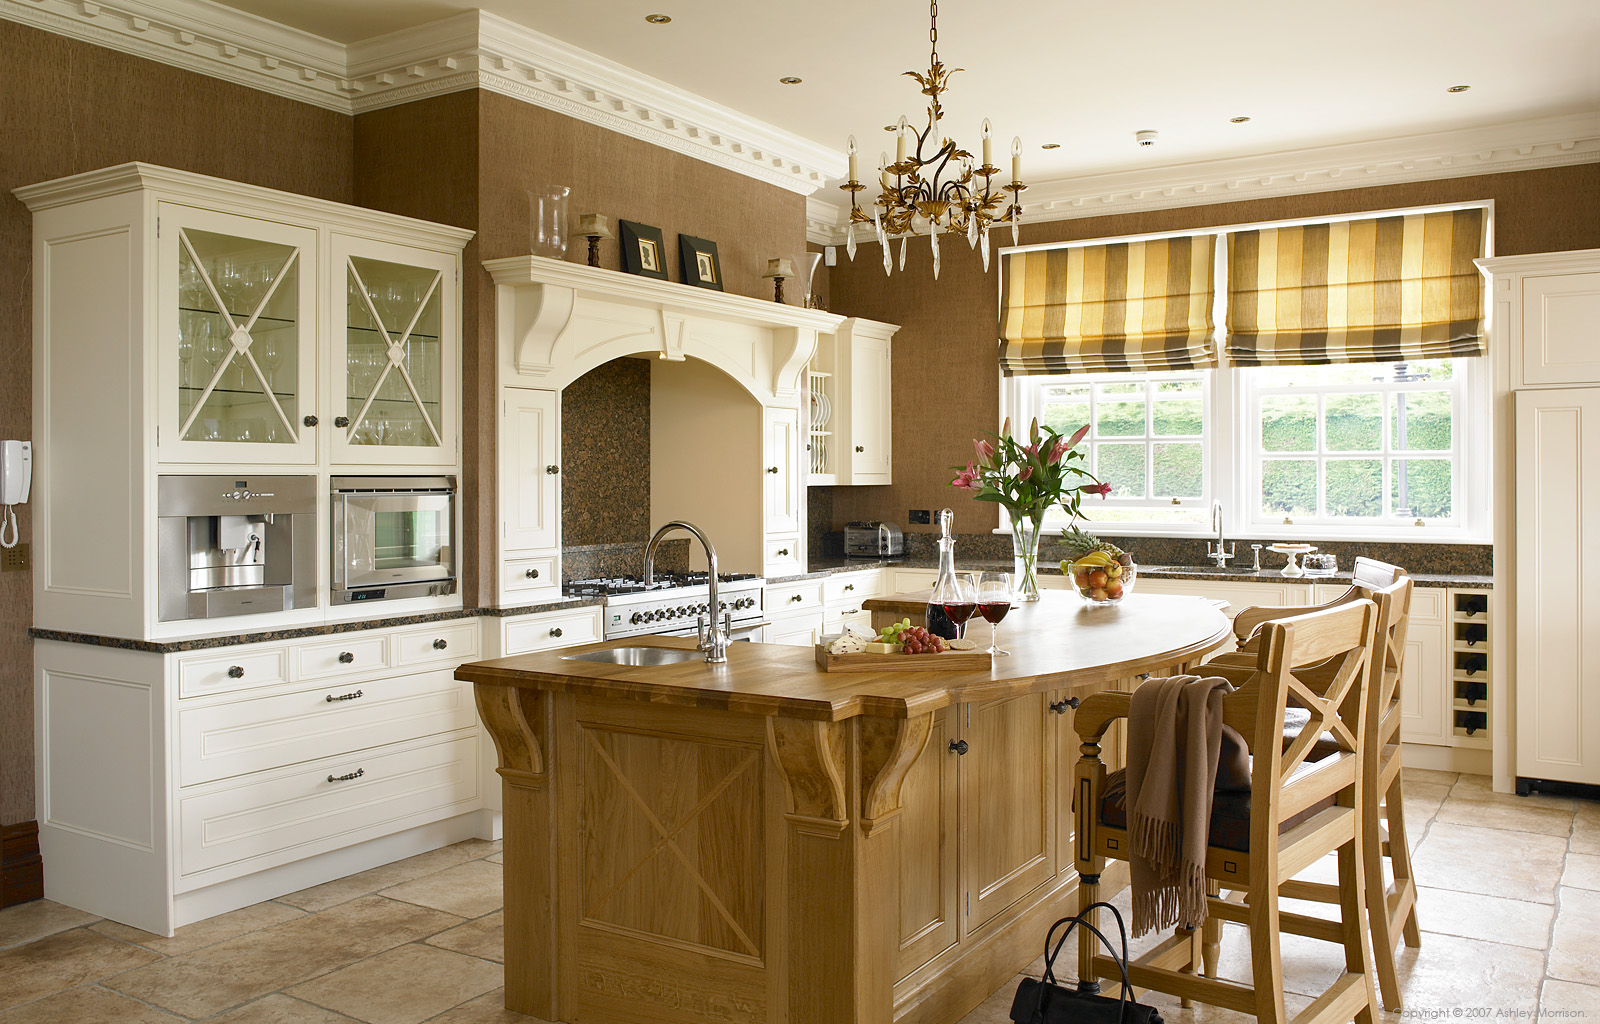 Handmade Painted Clotted Cream & Pippy Oak kitchen at McGlone's home near Magherafelt.